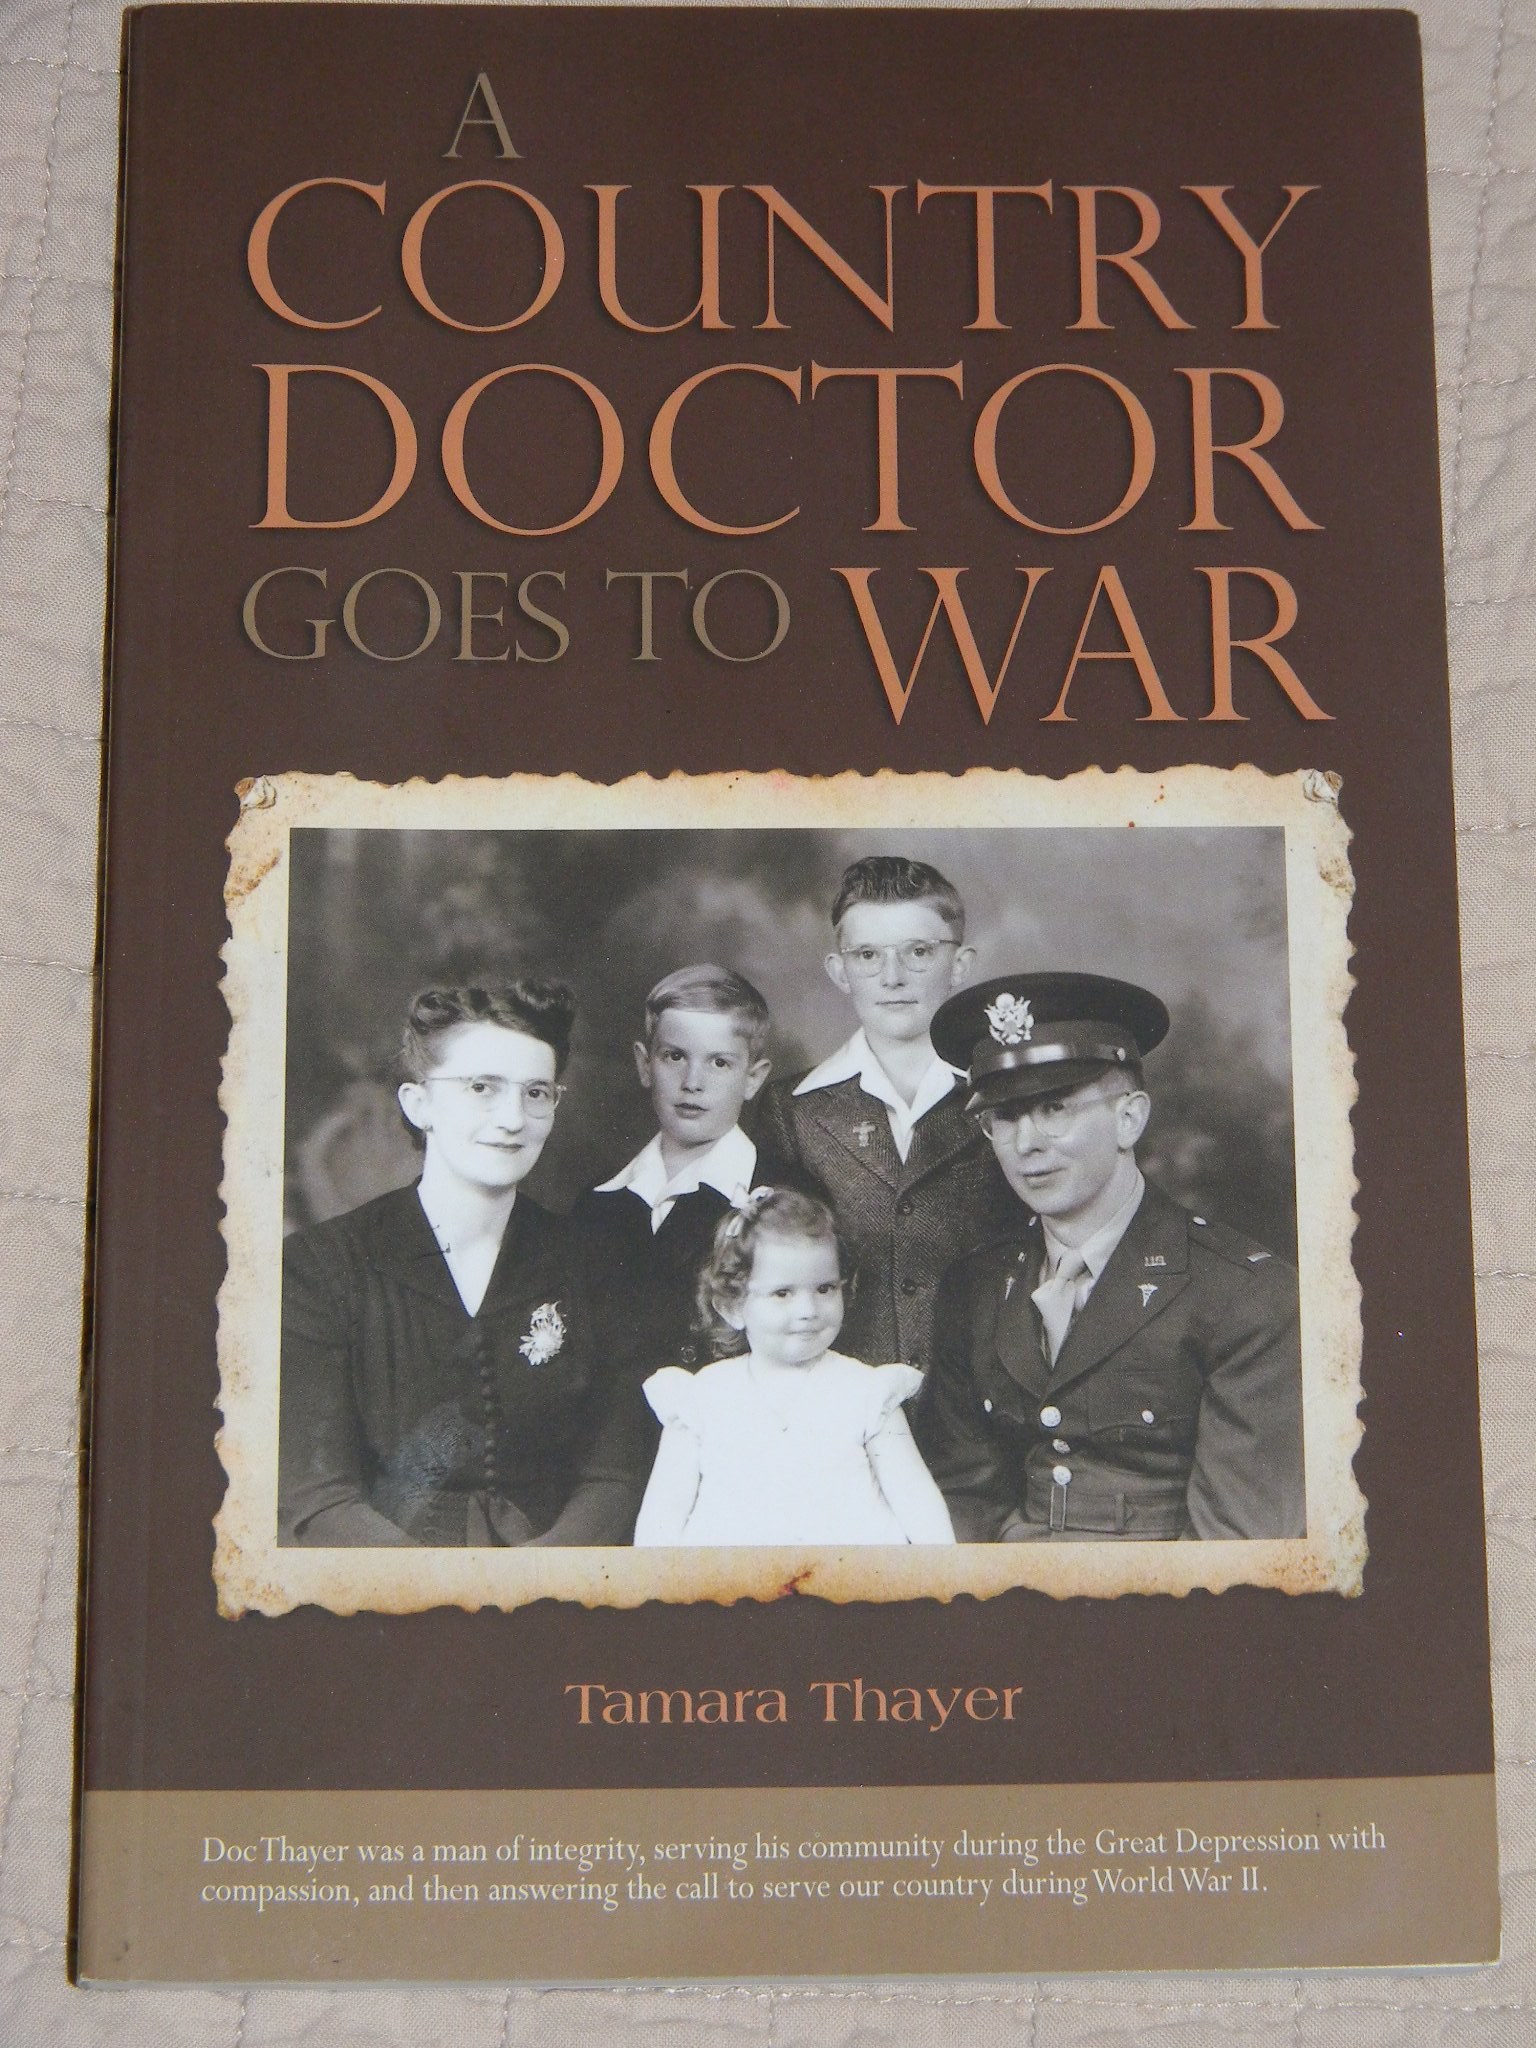 A Country Doctor Goes To War